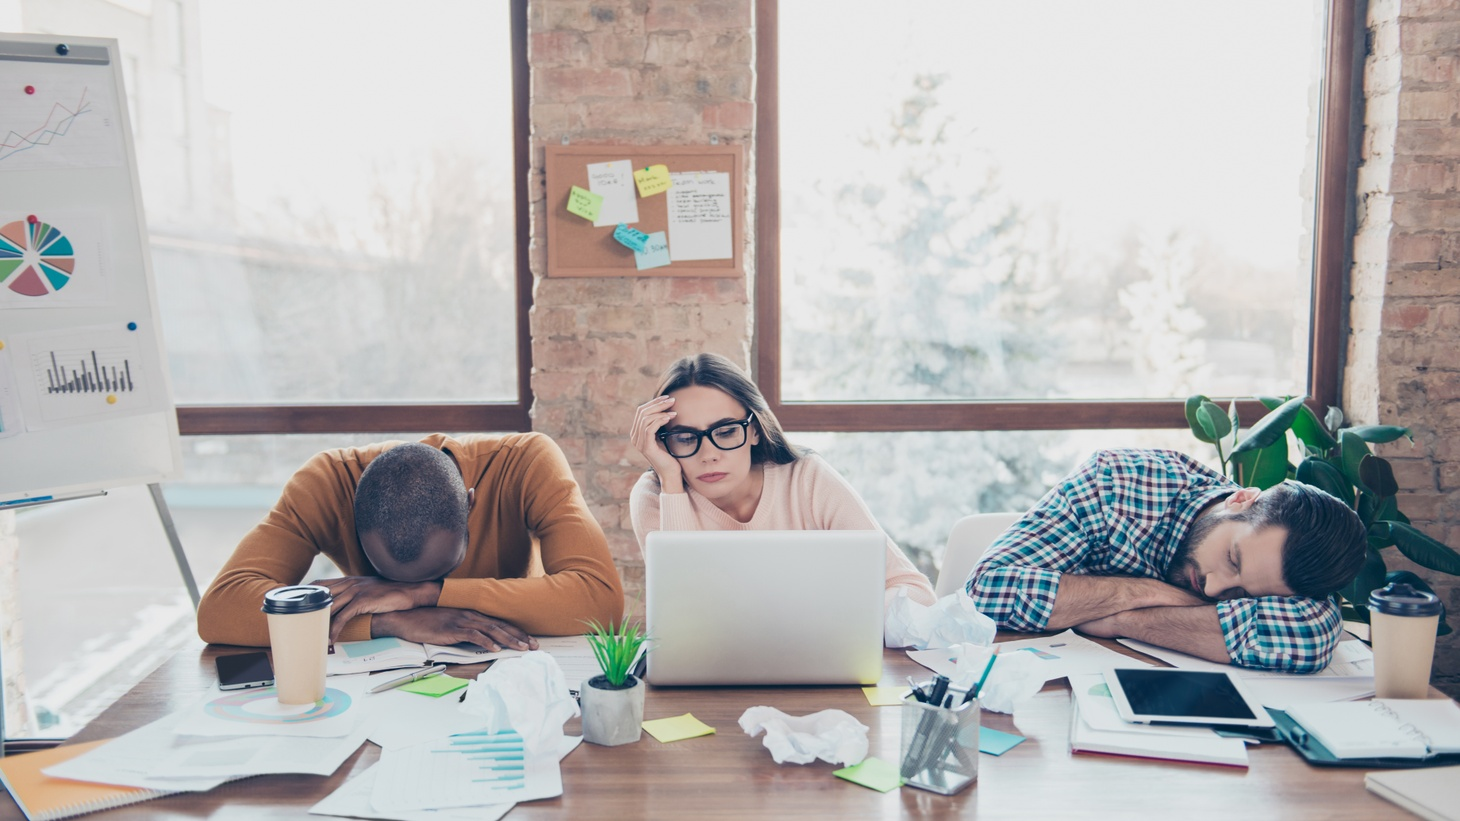 """""""The underlying reasons for moving to a shorter working week are as present in the U.S. as anywhere else. There are just as many workers who feel overworked, burnt out, distressed by jobs, and who are suffering themselves,"""" says researcher Jack Kellam."""